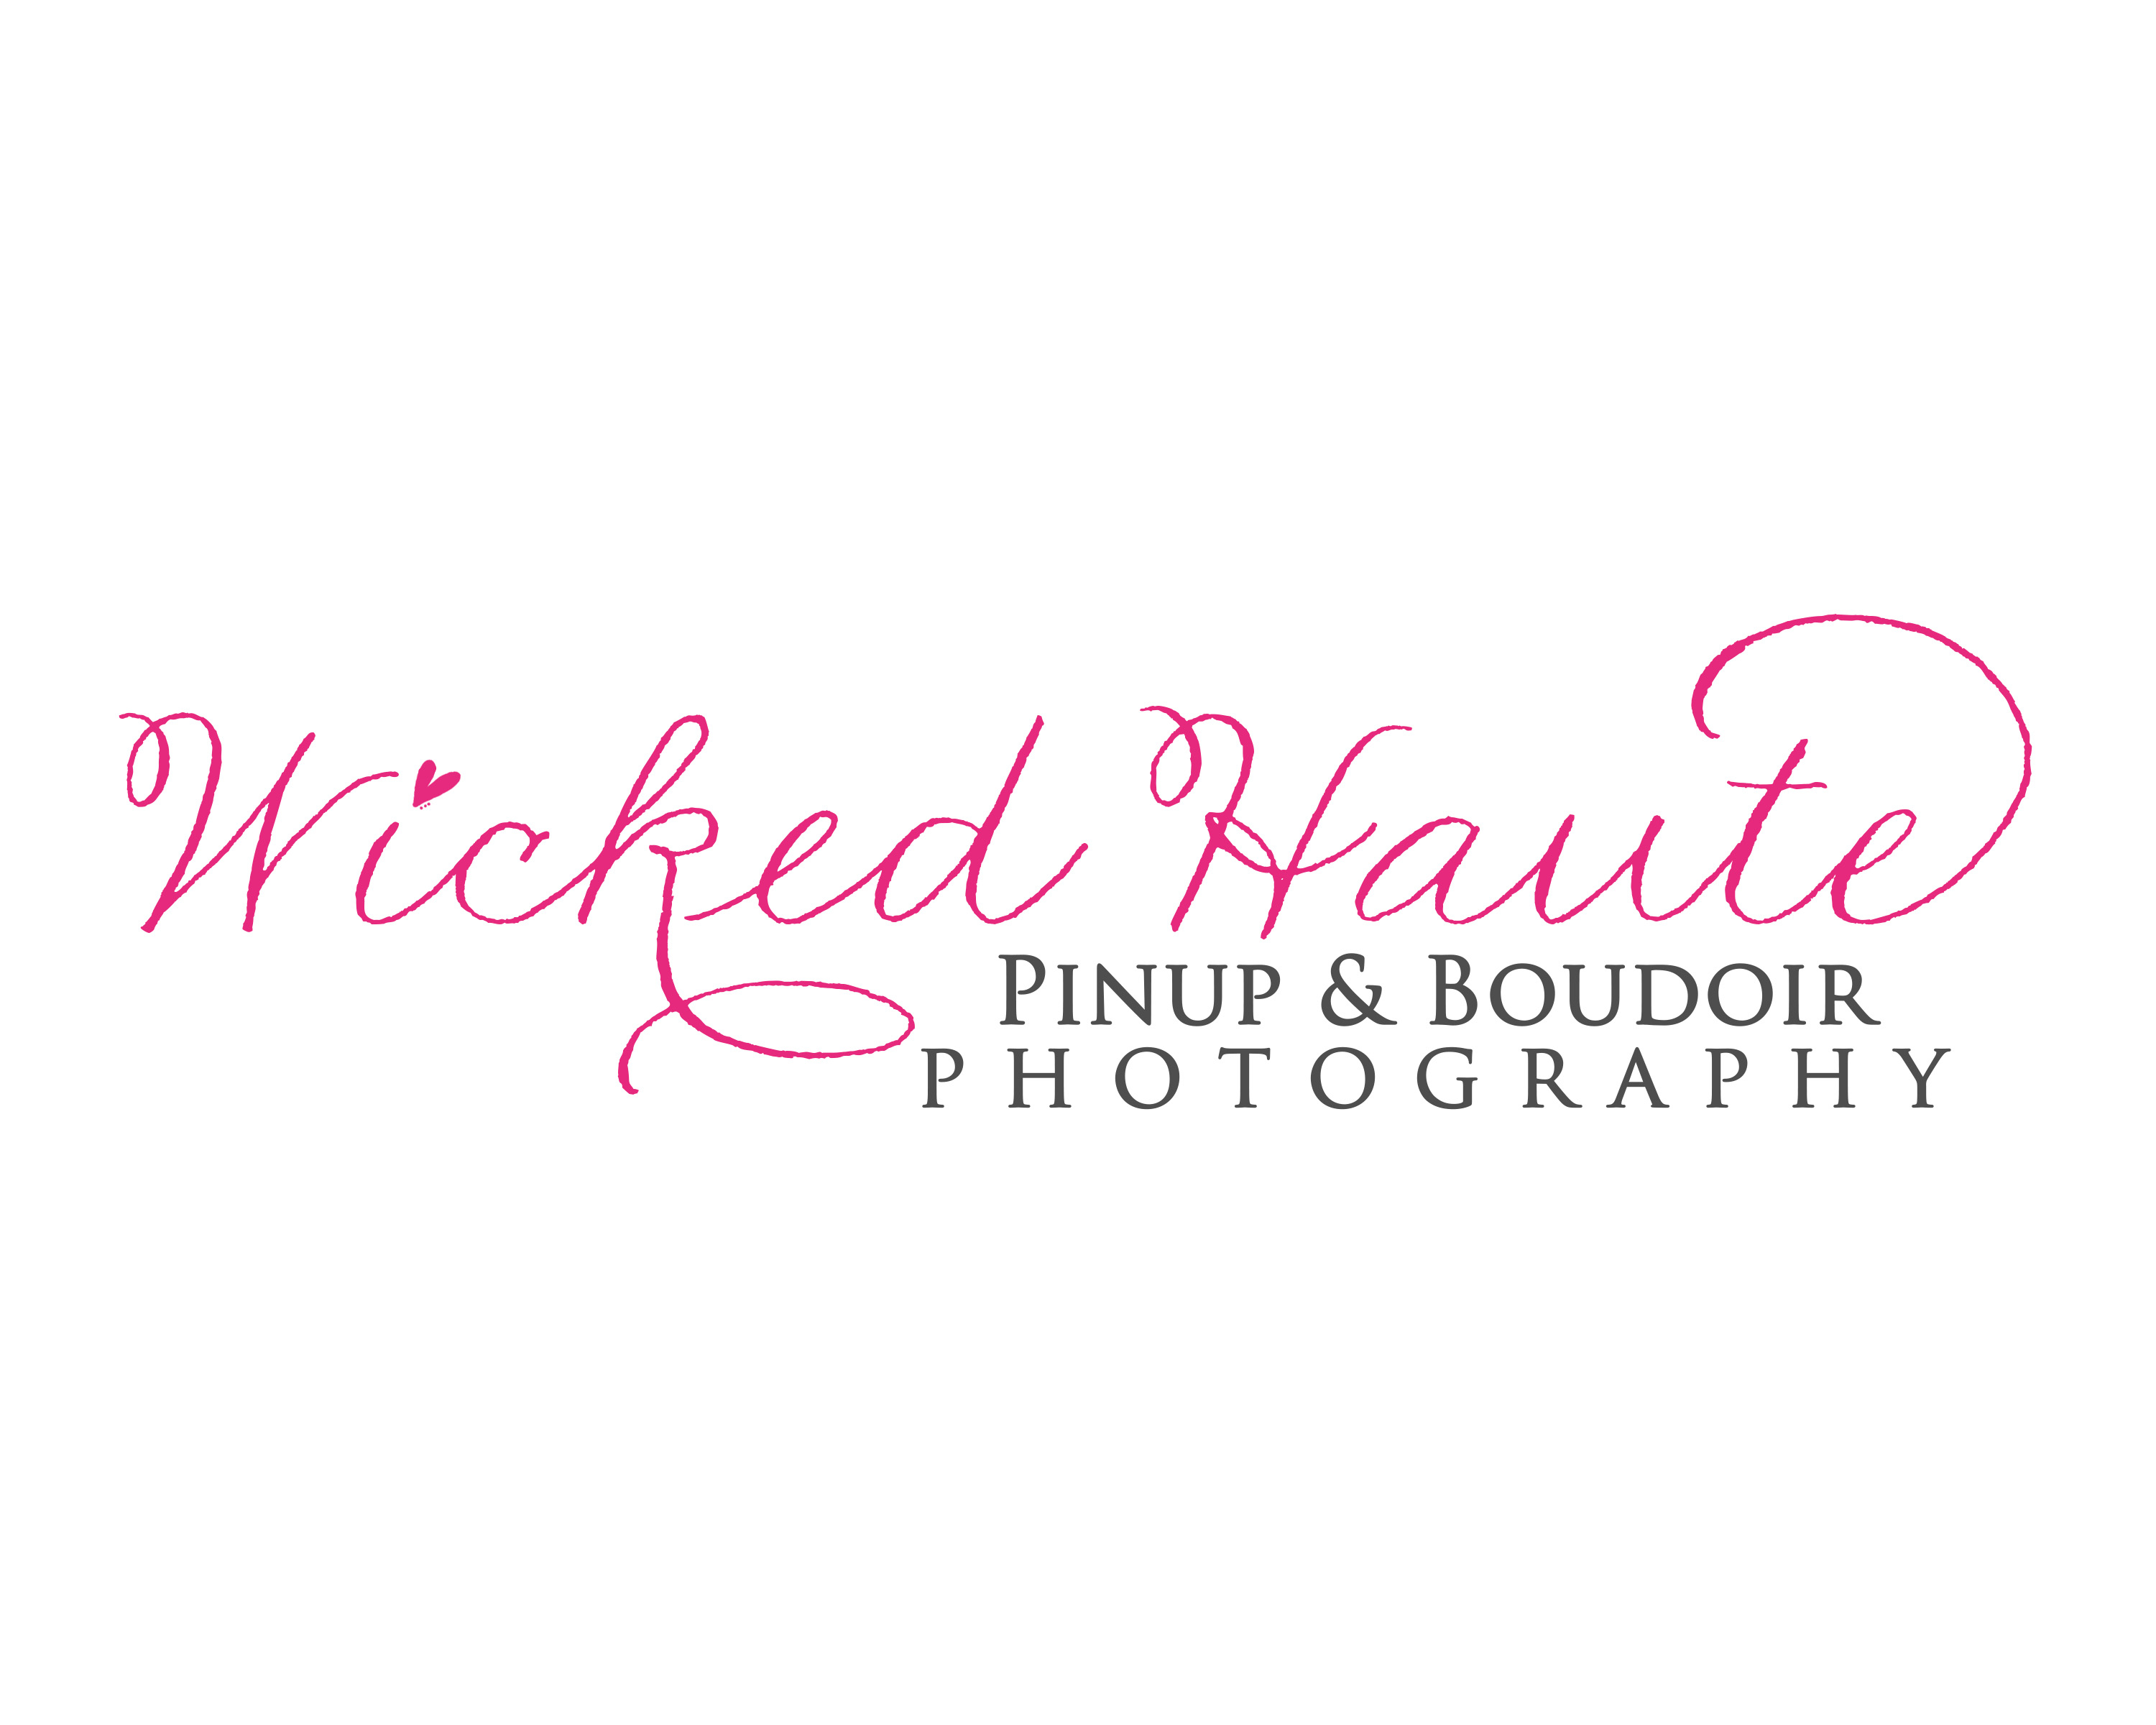 Wicked Haute Pinup & Boudoir Photography